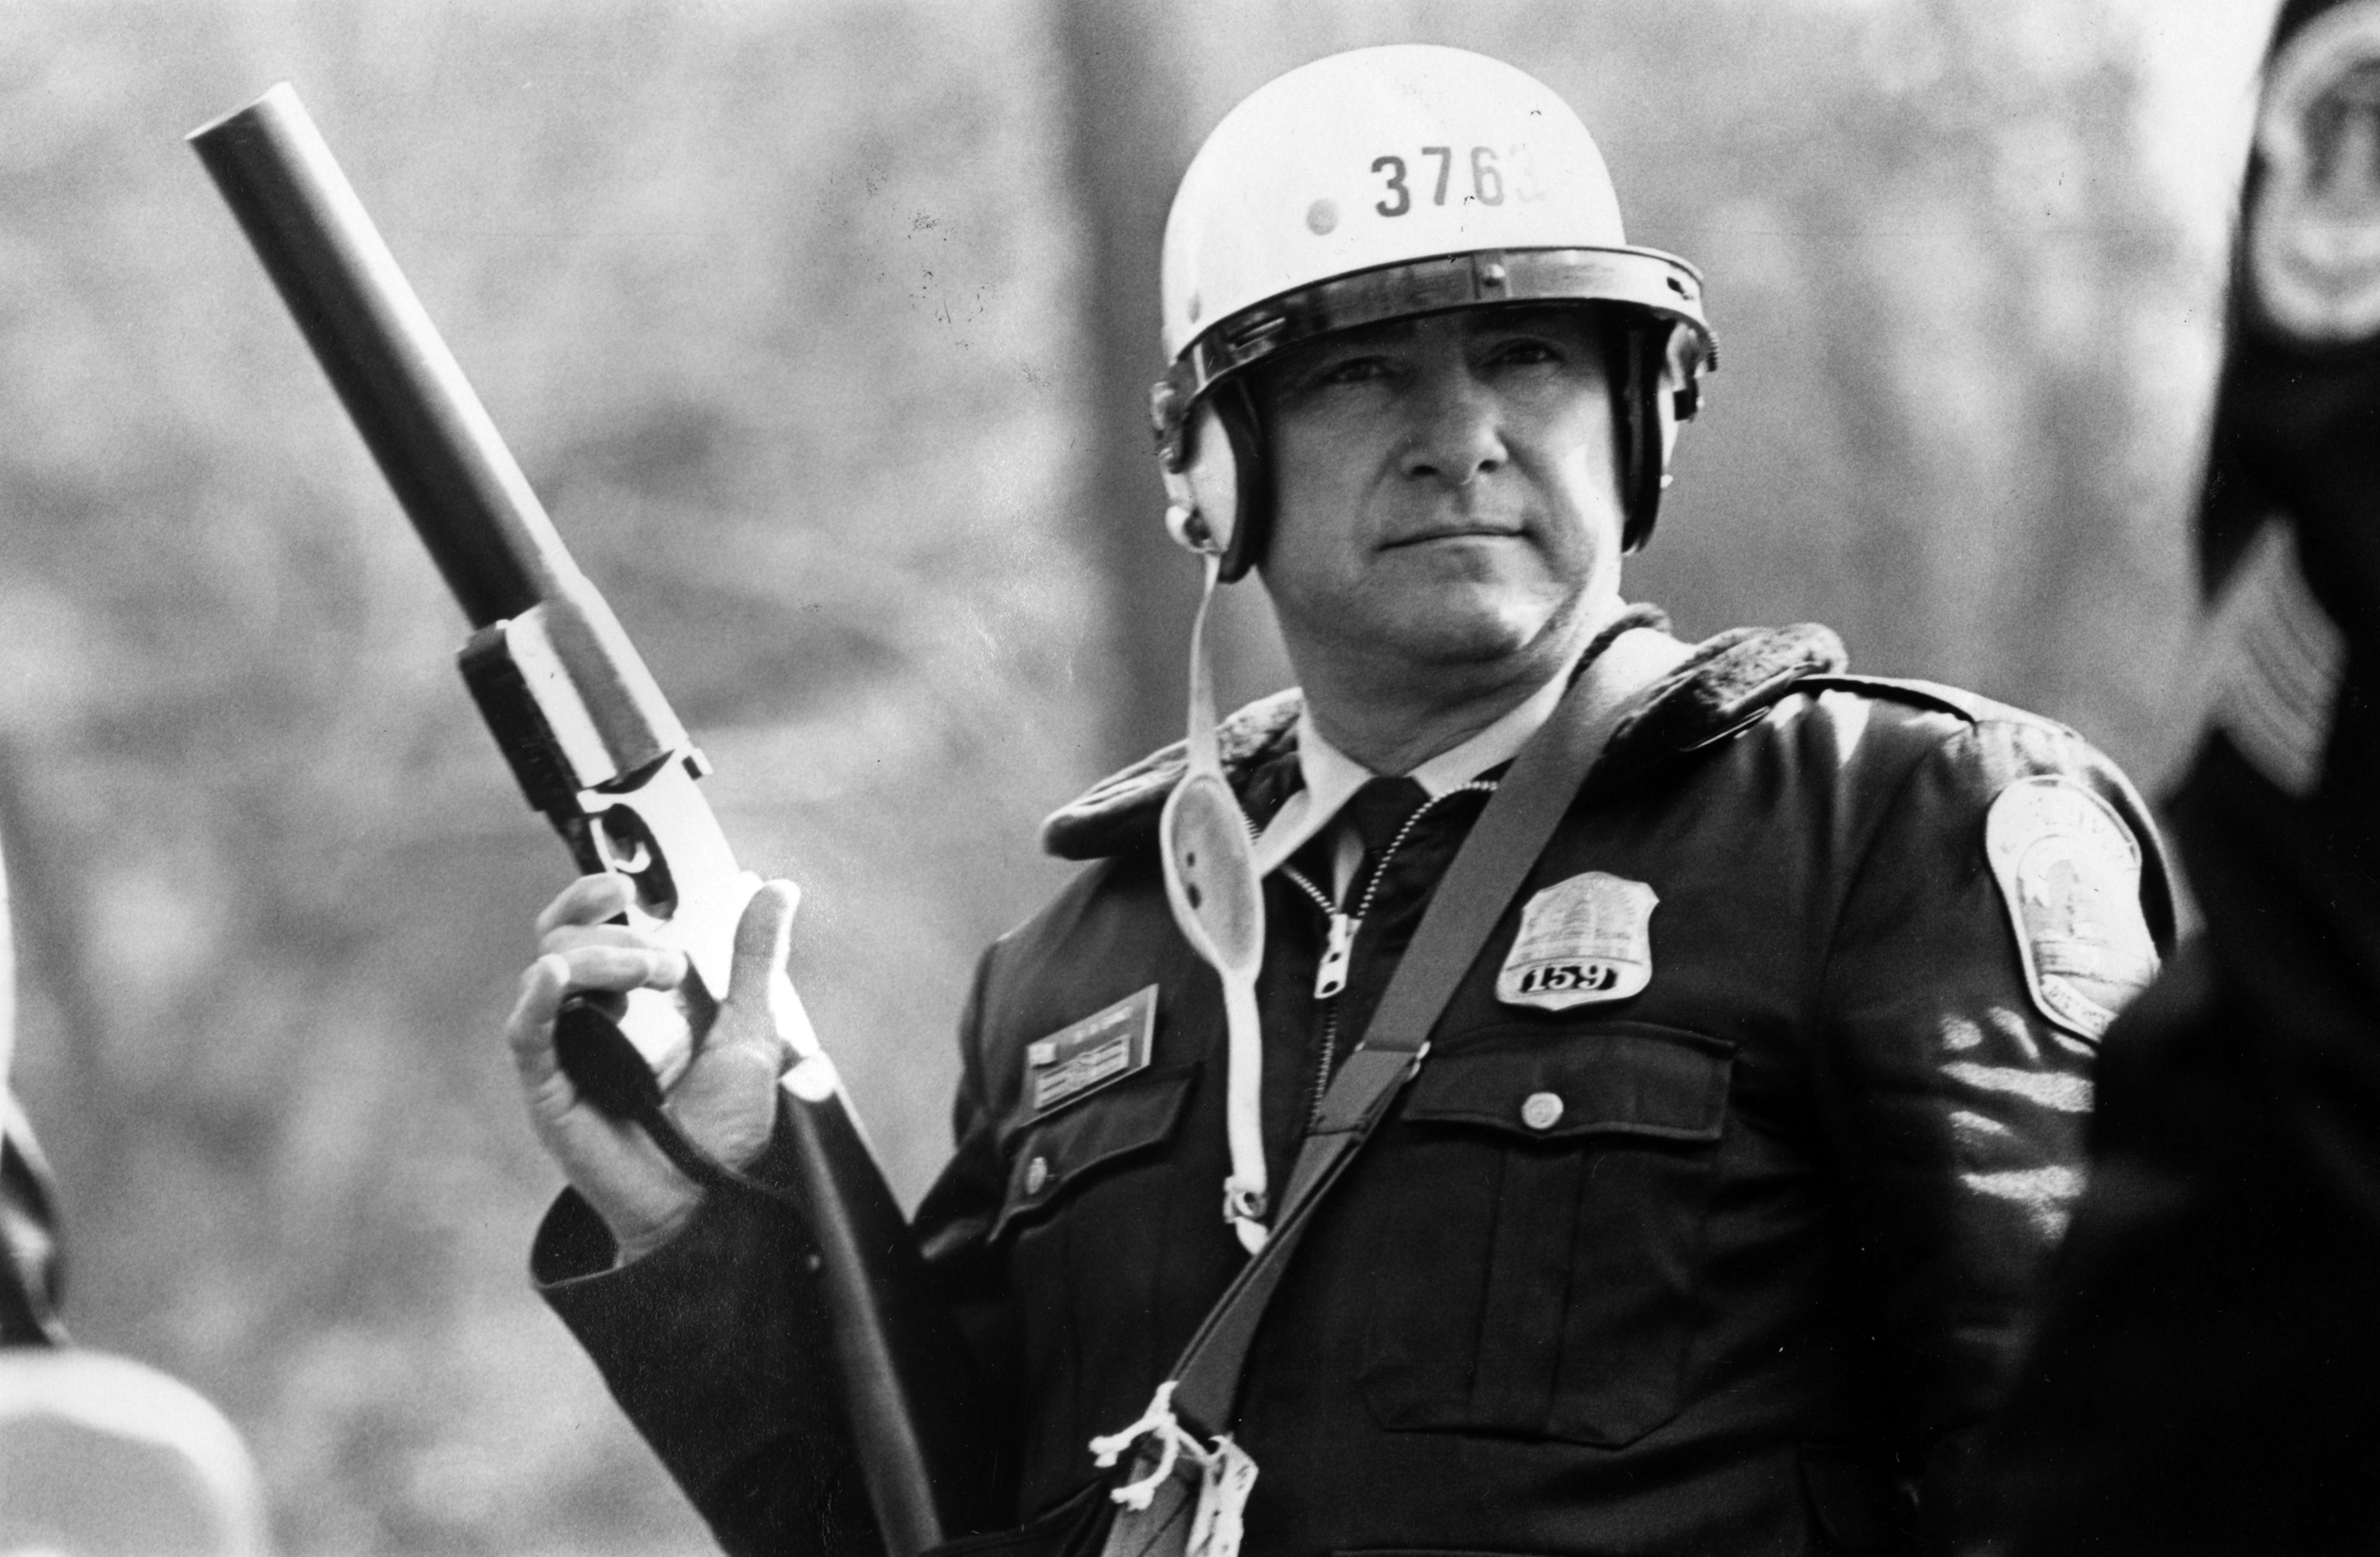 A police officer with a tear gas gun during an anti-Ku Klux Klan protest in Washington D.C., November, 1982.